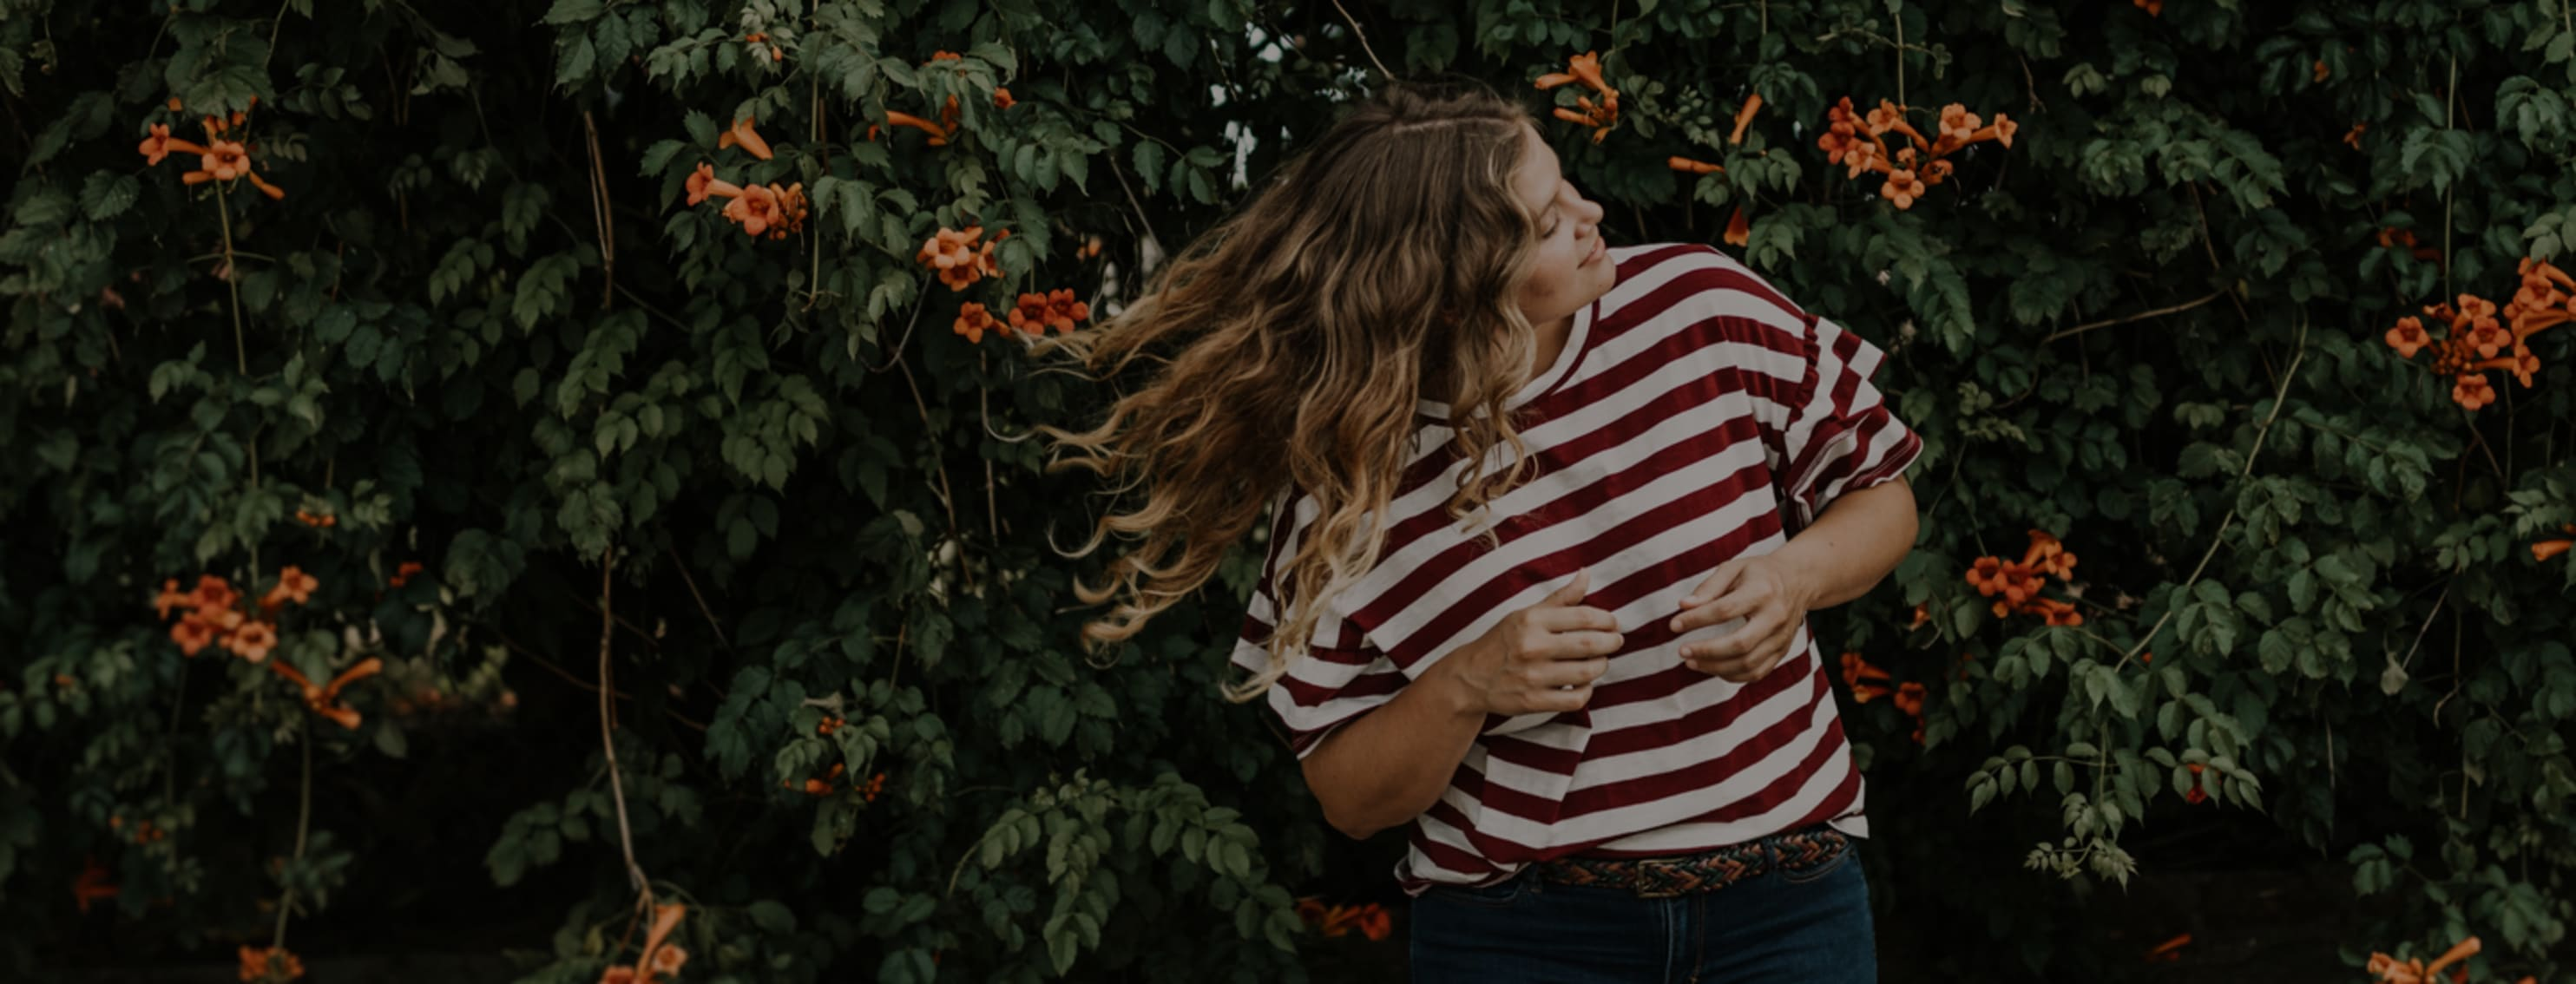 Woman with red and white striped shirt is flipping her hair.